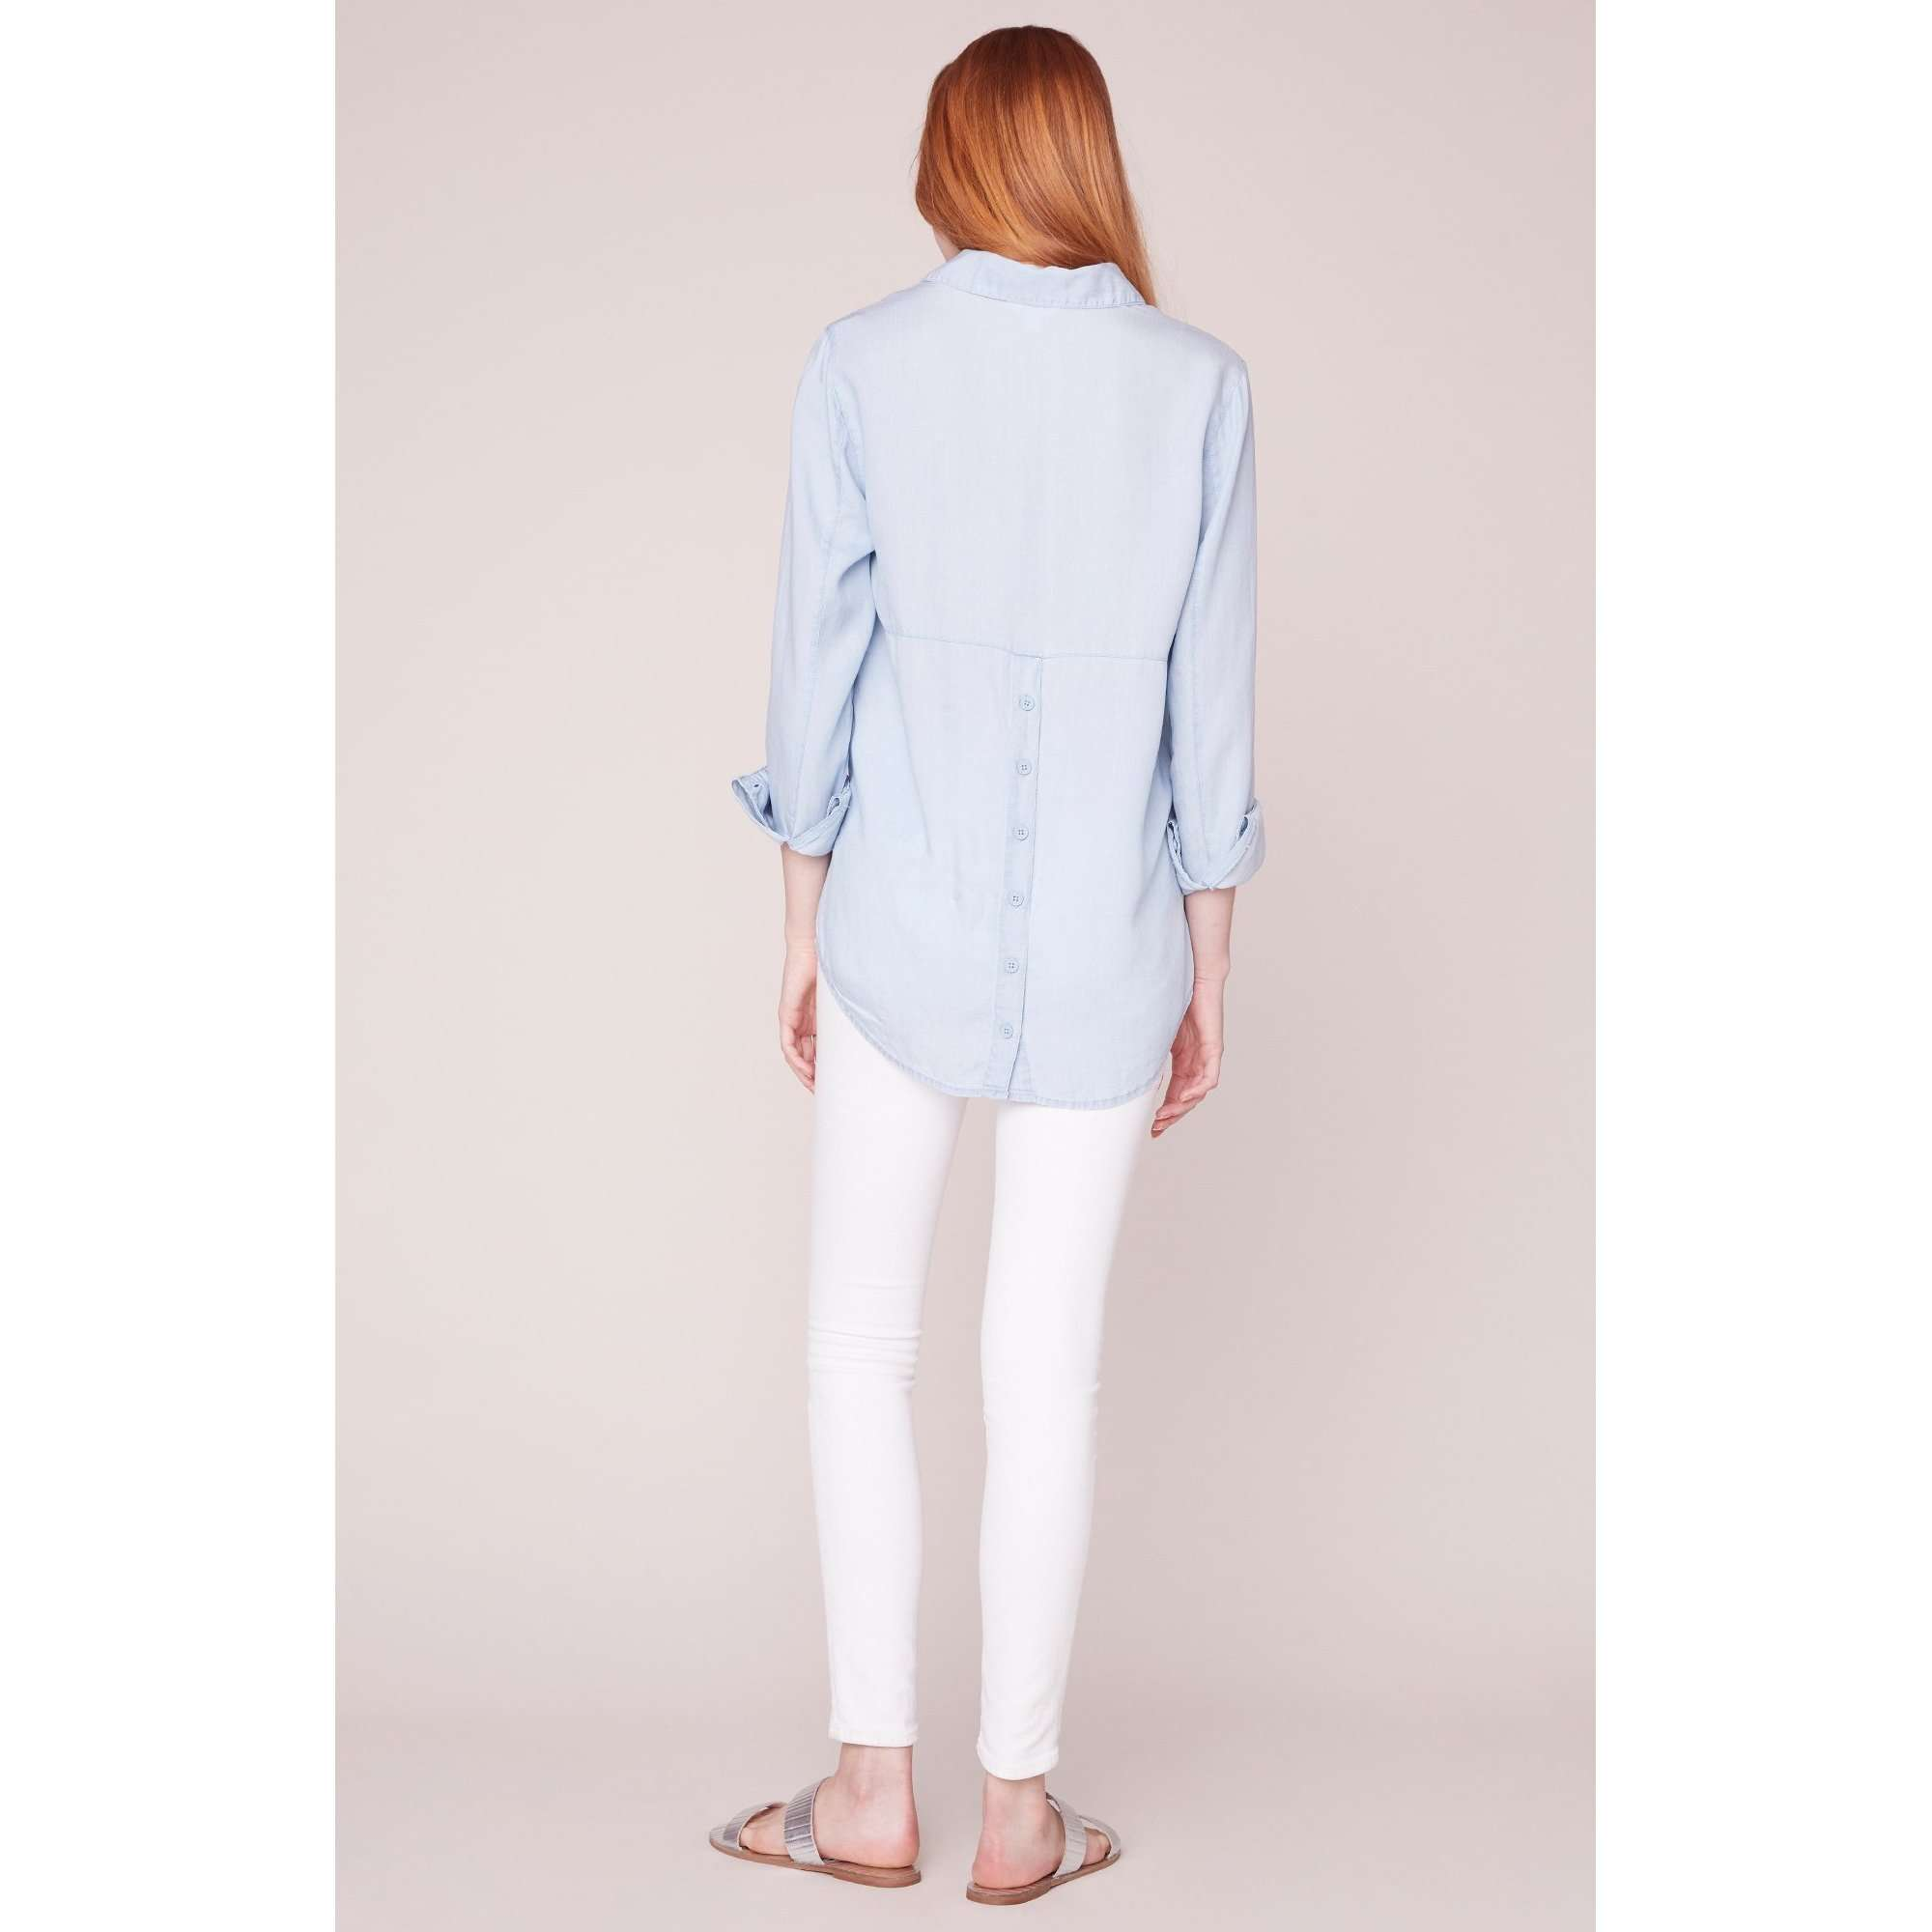 8.28 Boutique:Jack by BB Dakota,Jack by BB Dakota Wash My Worries Chambray Top,Tops